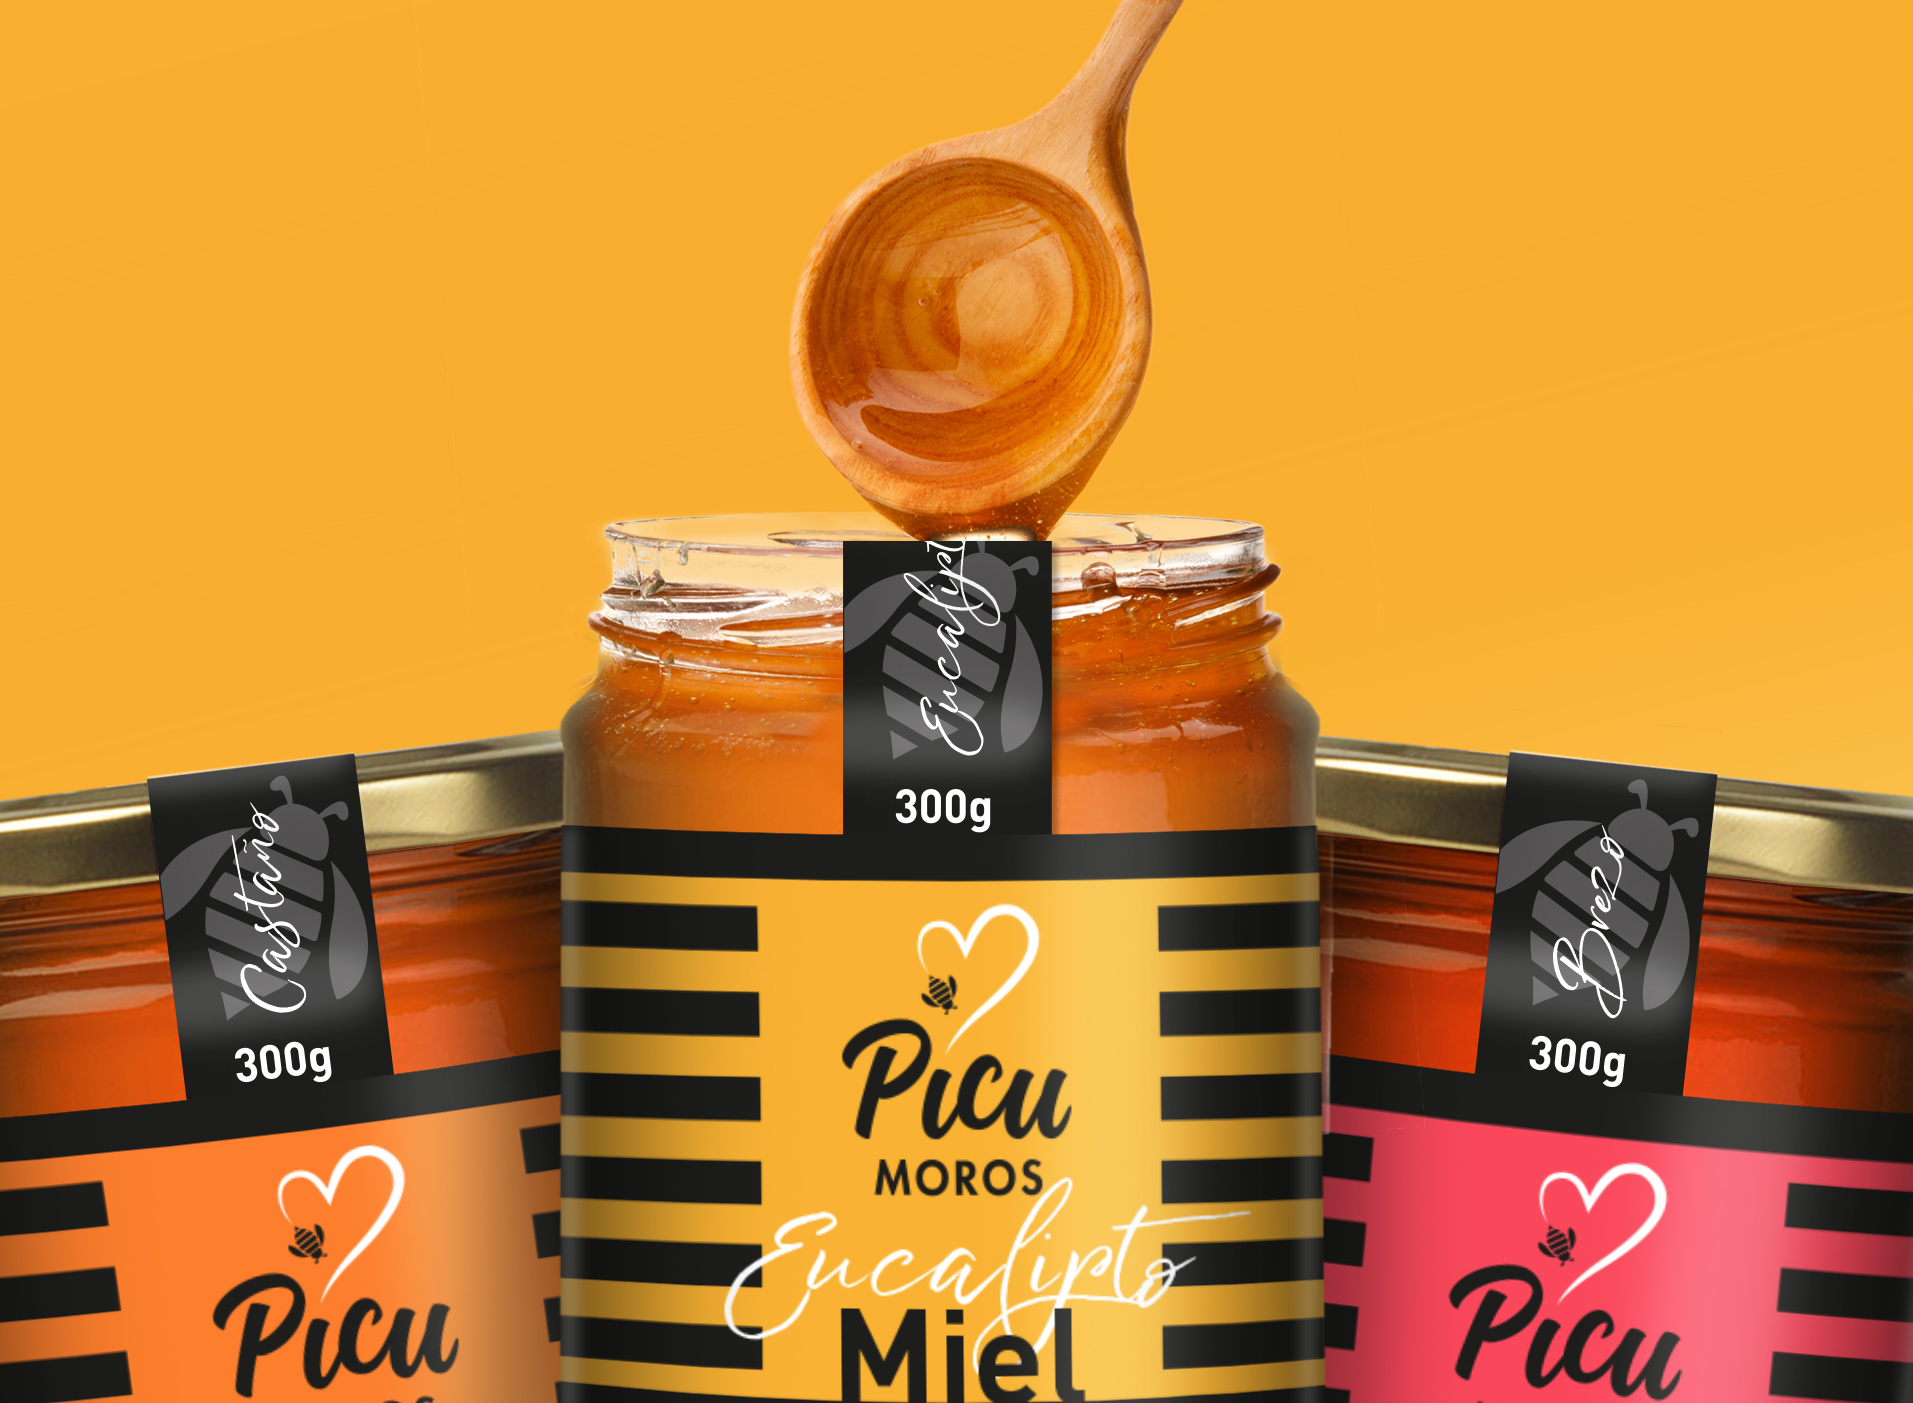 Packaging and branding design for a Honey brand